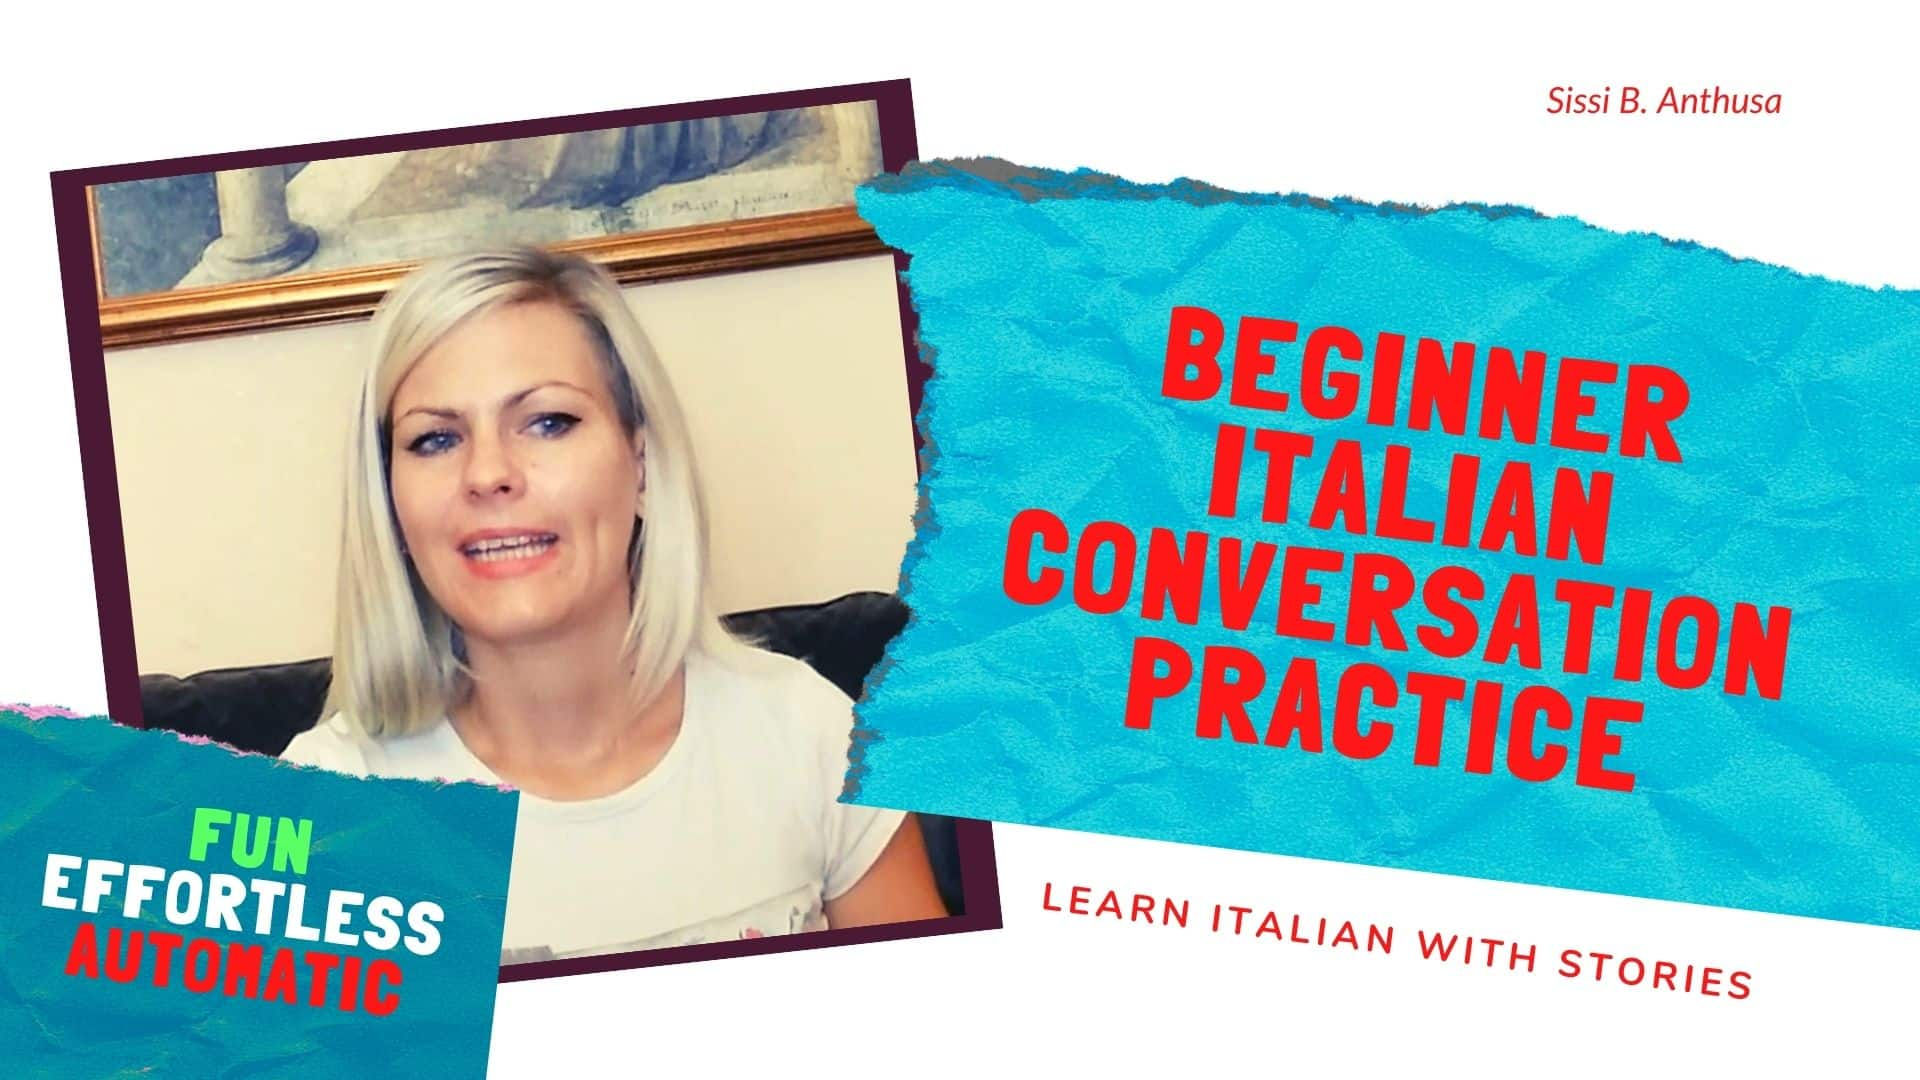 Beginner Italian Conversation Practice. How to Understand Italian with a Simple Trick?